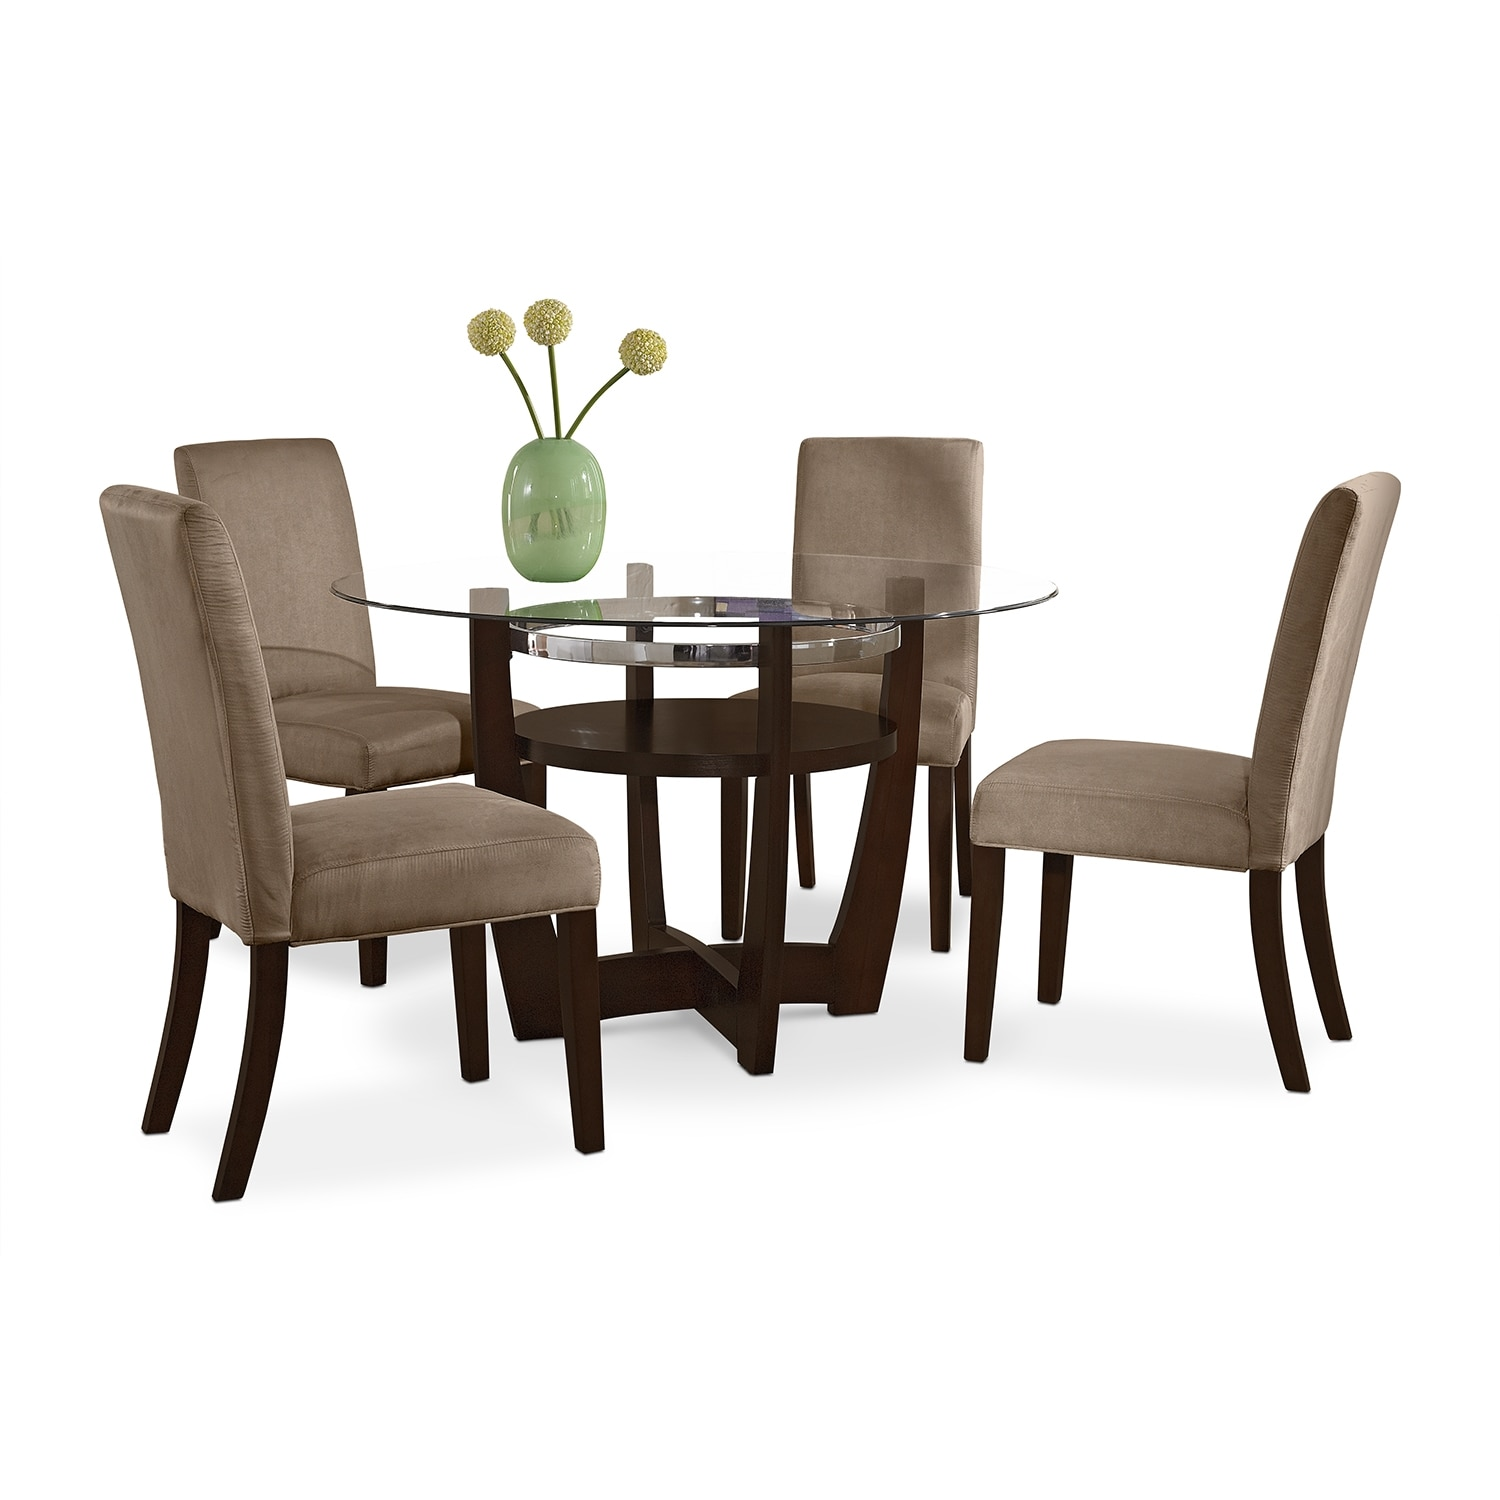 Value City Chairs Alcove Dinette With 4 Side Chairs